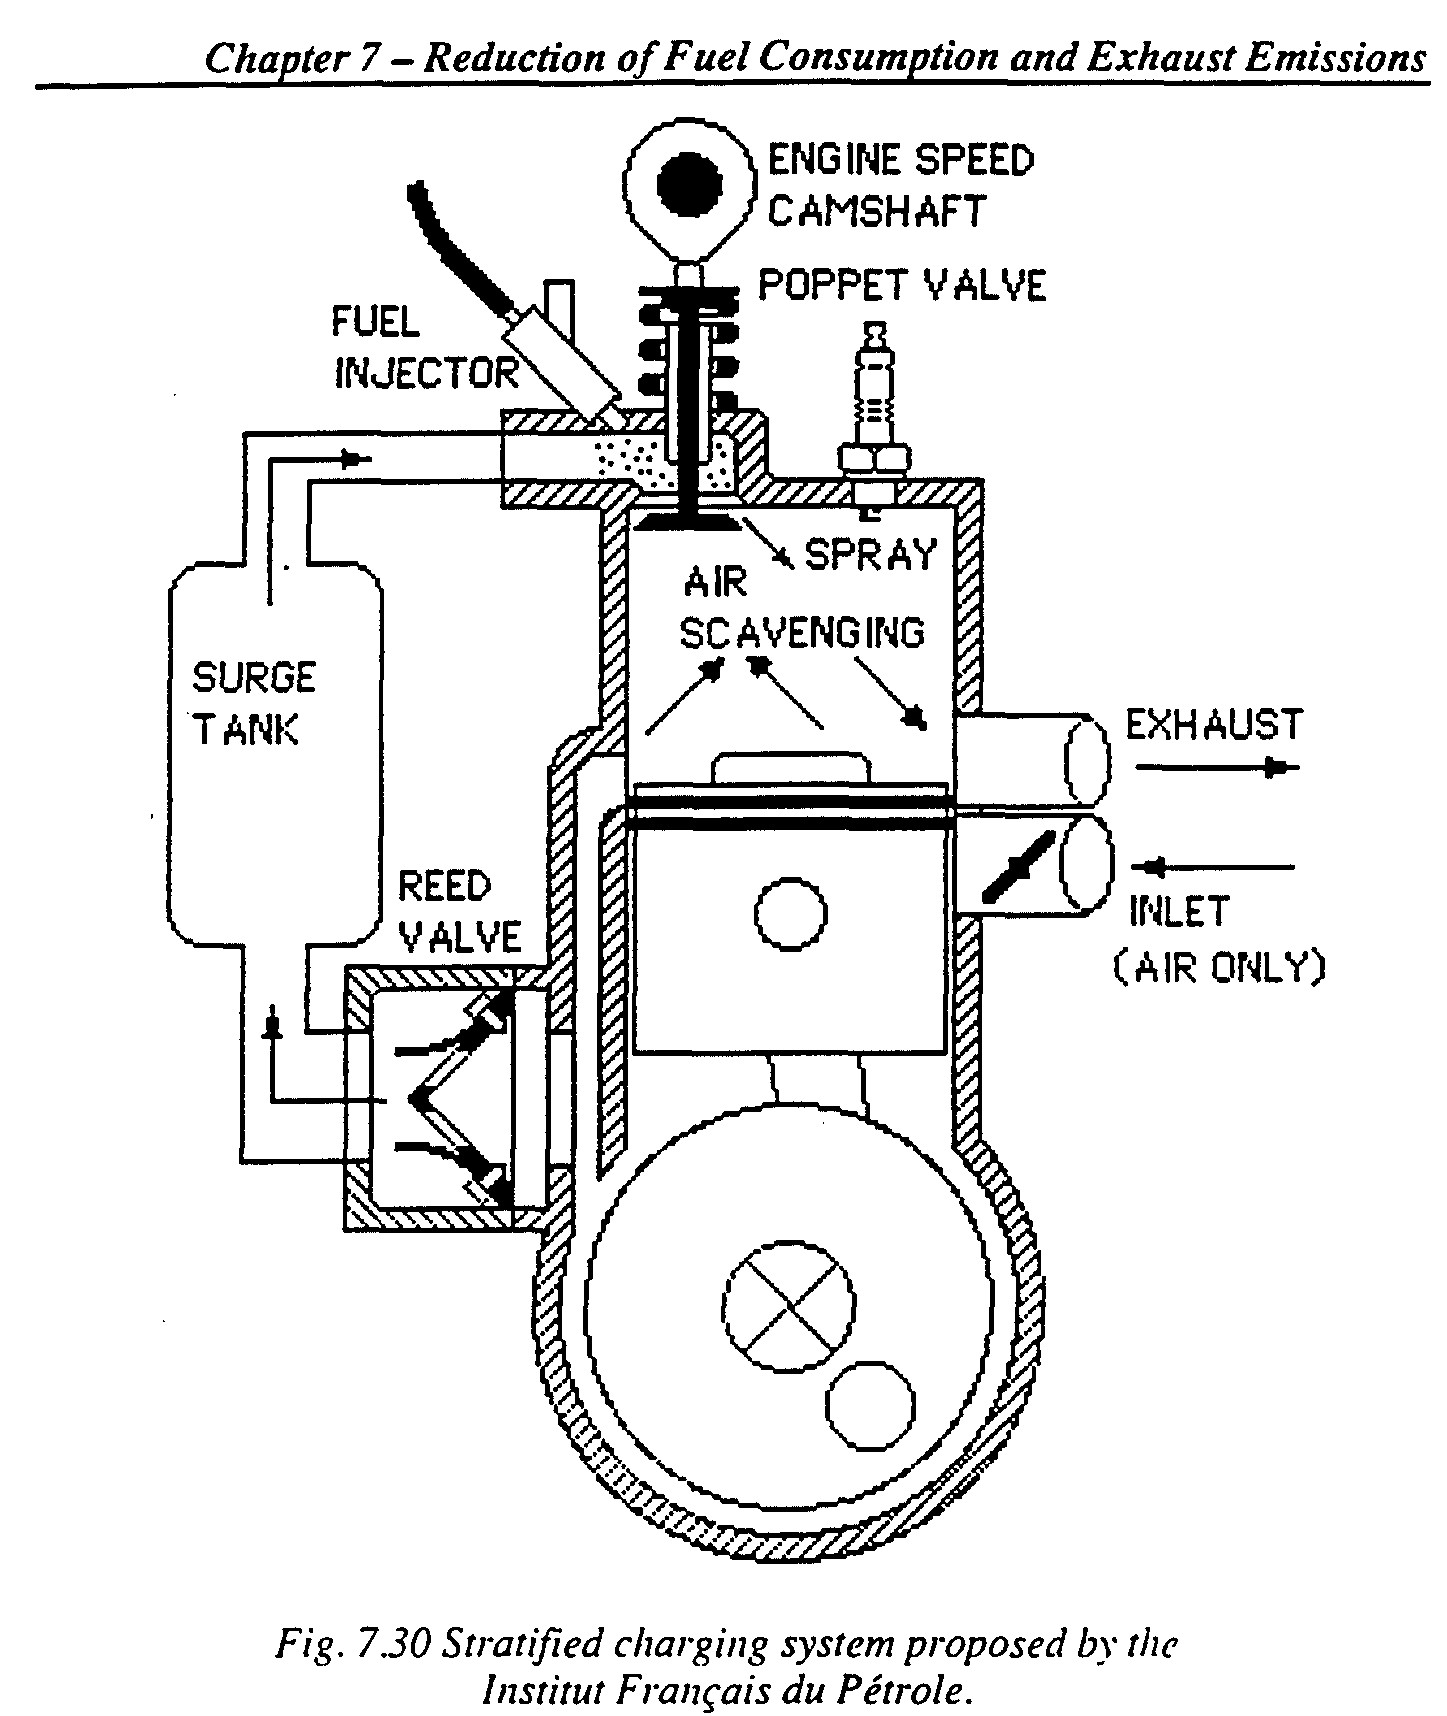 Single Cylinder Engine Diagram Wo A1 Two Cycle Engine with Reduced Hydrocarbon Emissions Of Single Cylinder Engine Diagram